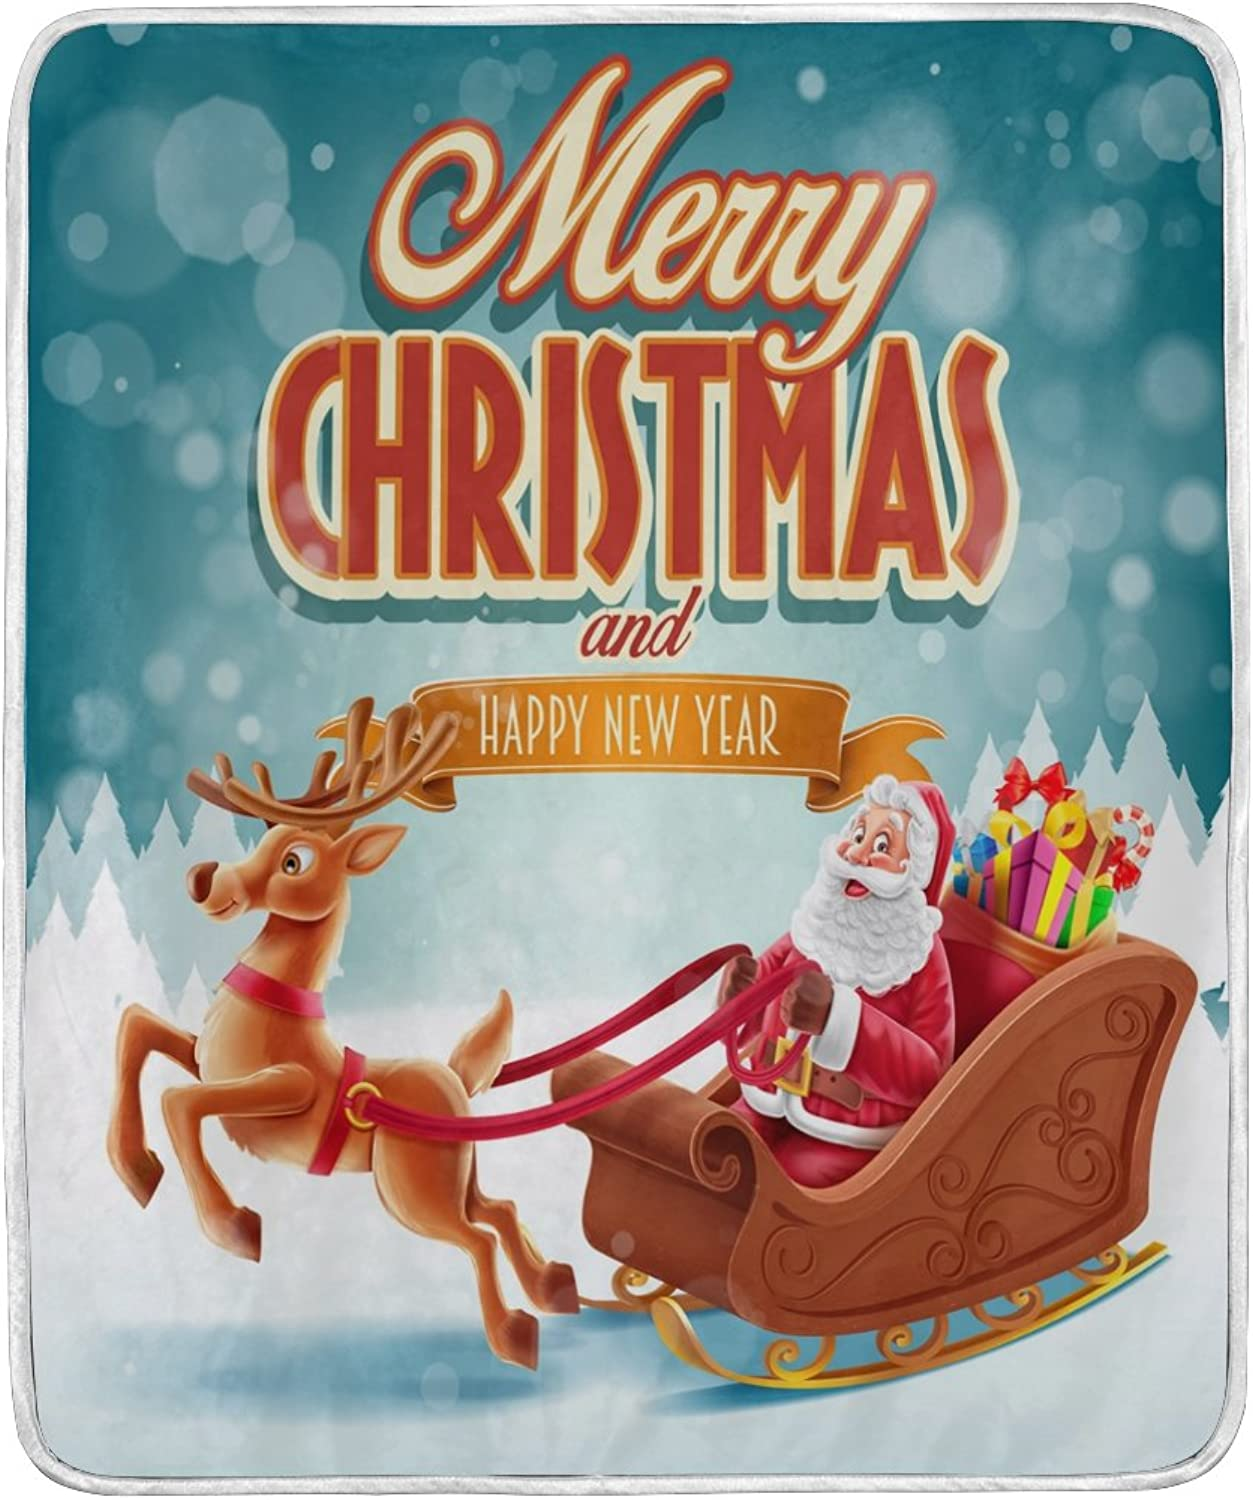 ALAZA Home Decor Merry Christmas Deer Santa Claus New Year Soft Warm Blanket for Bed Couch Sofa Lightweight Travelling Camping 60 x 50 inch Throw Size for Kids Boys Girls